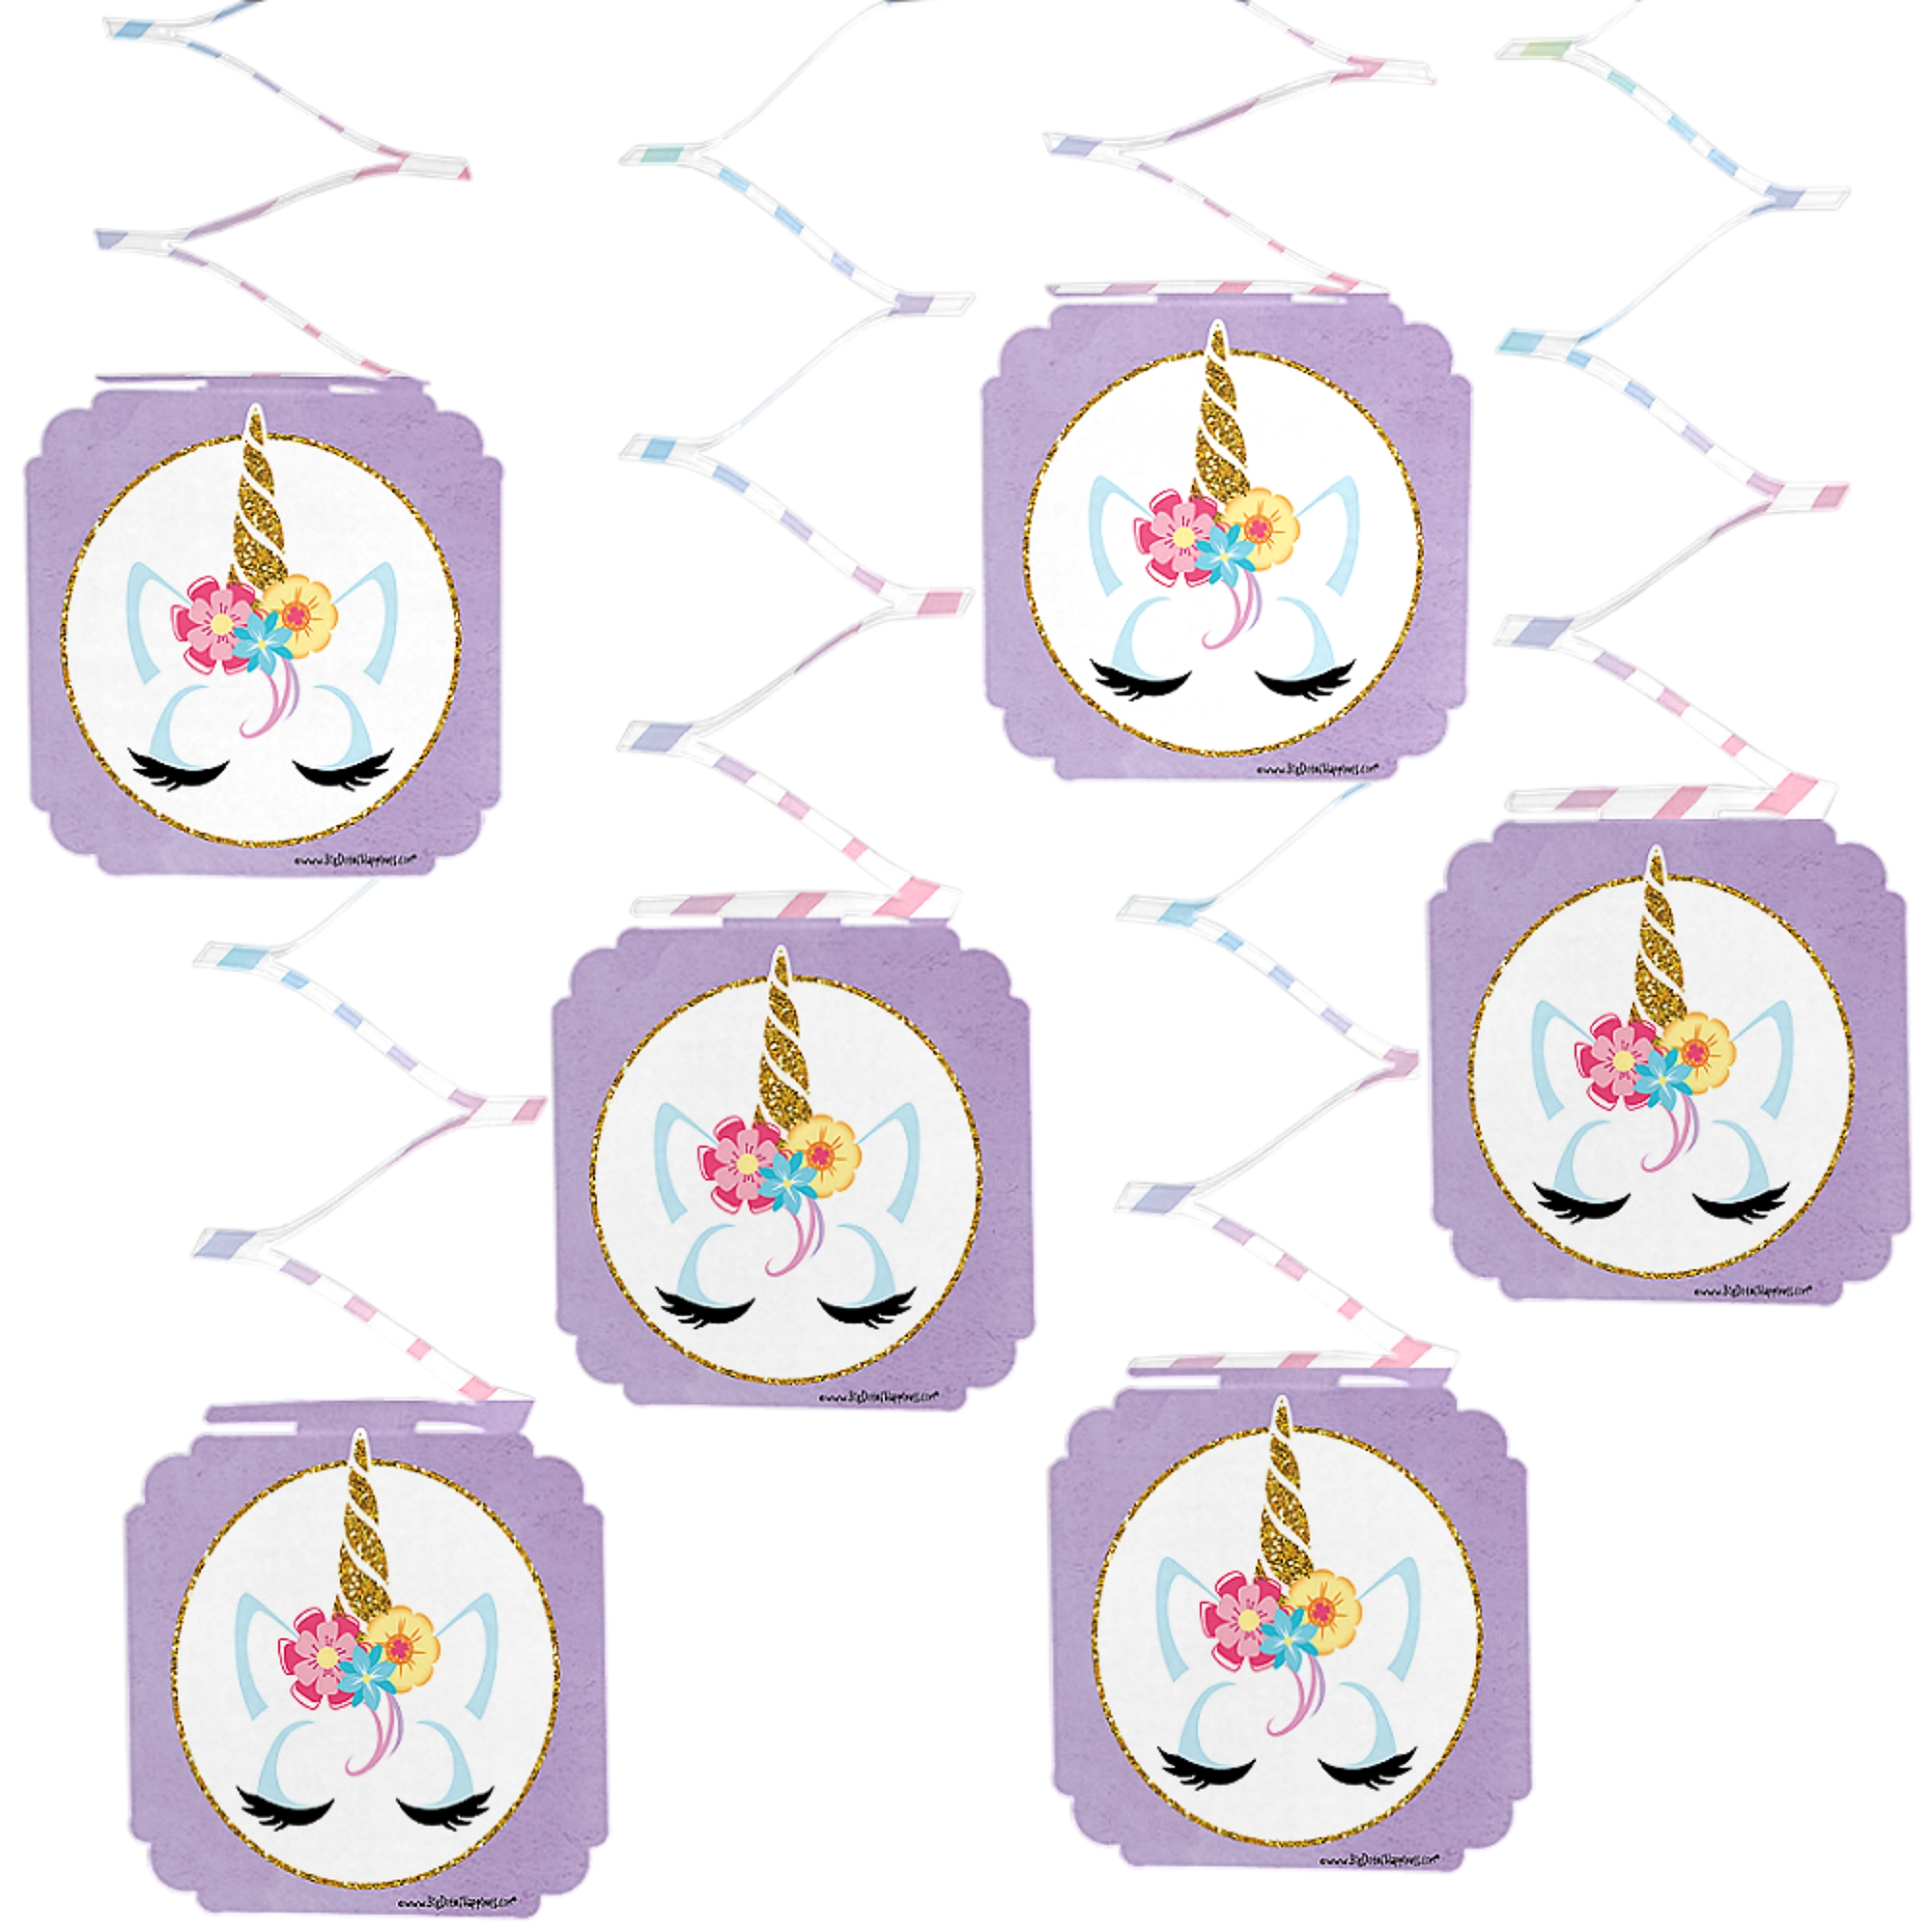 Rainbow Unicorn - Magical Unicorn Baby Shower or Birthday Party Hanging Decorations - 6 Count